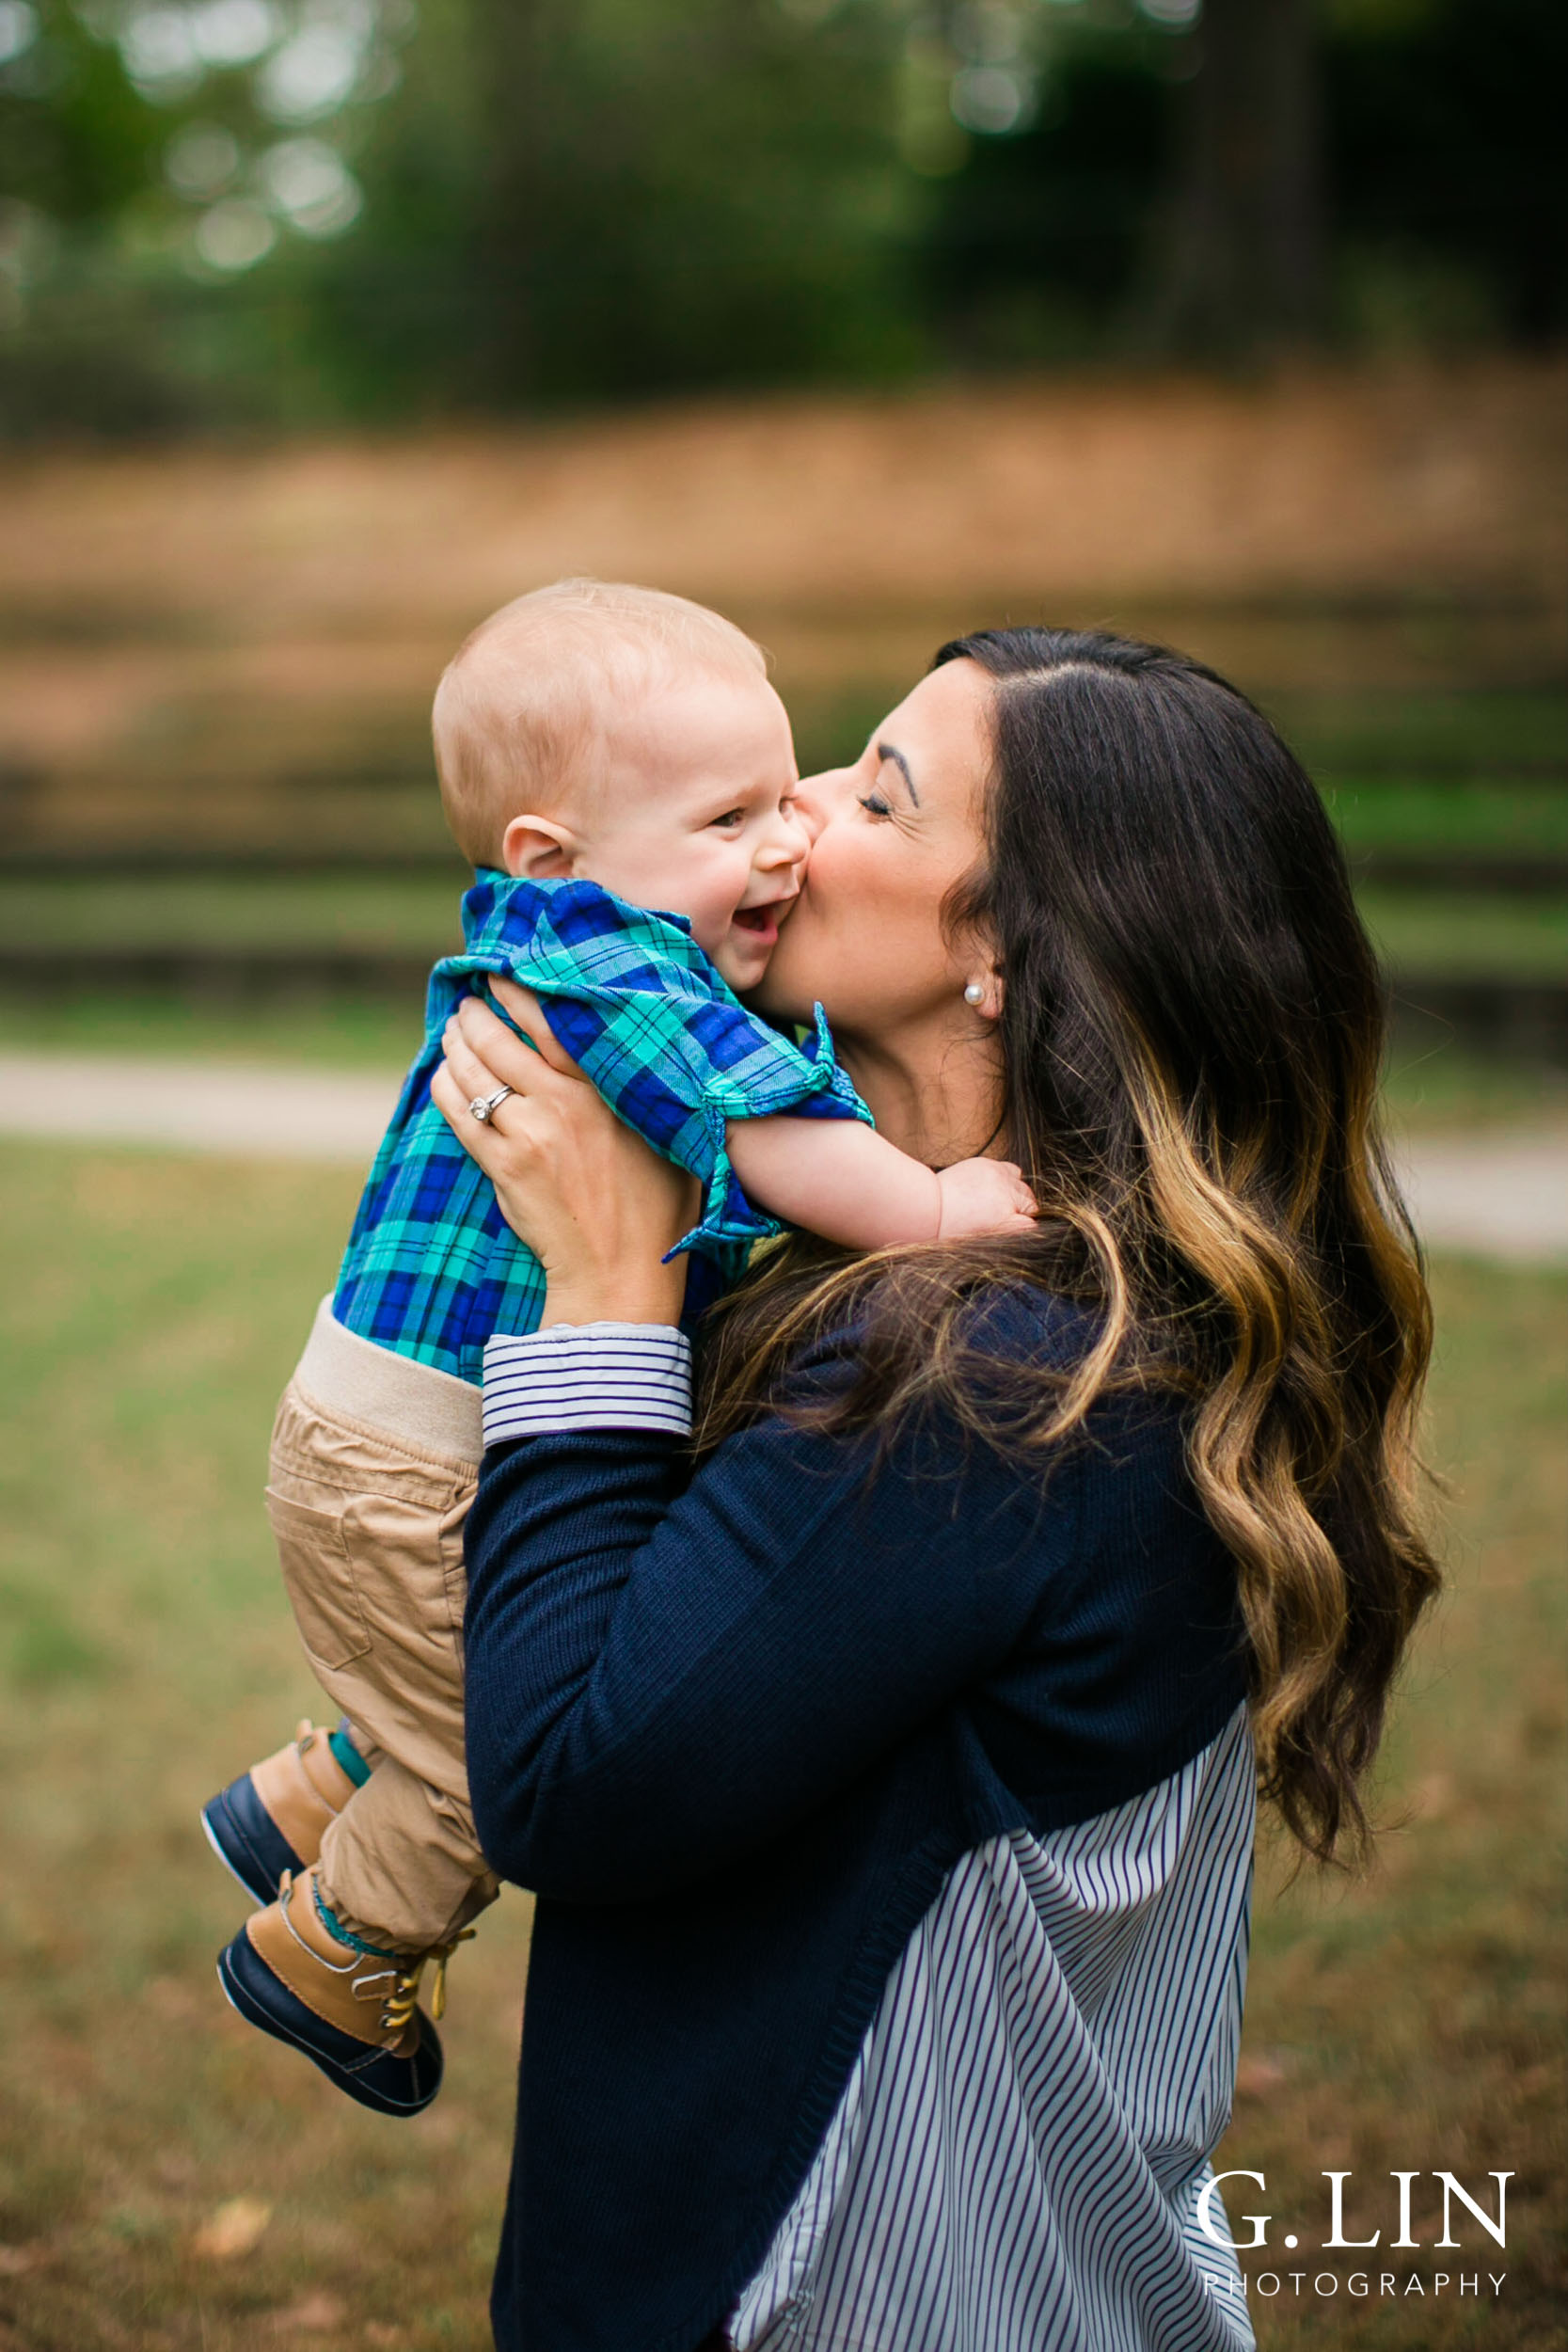 Raleigh Newborn Photographer | G. Lin Photography | Mom kissing baby boy at park